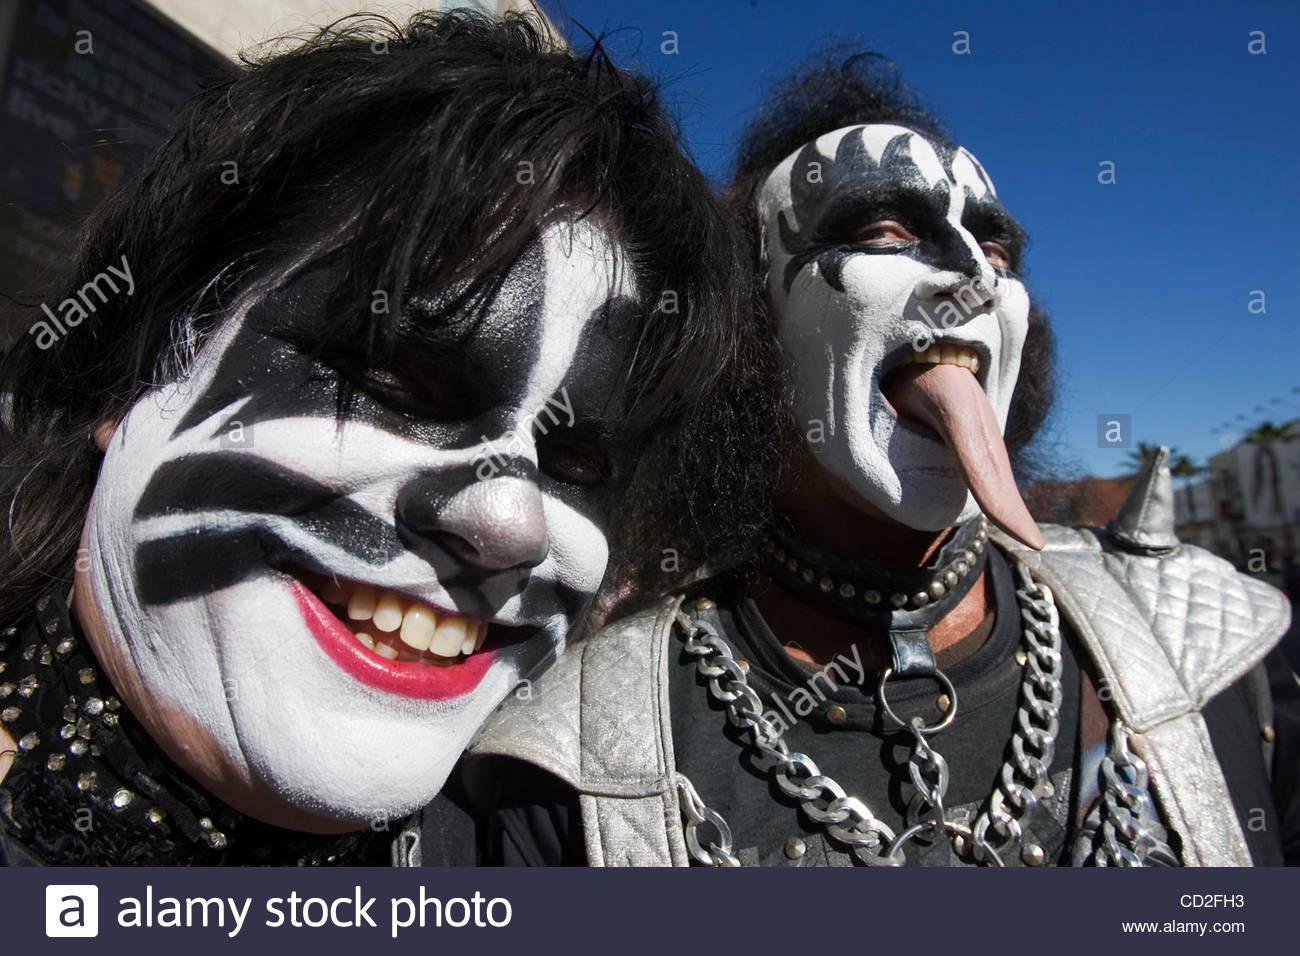 catman-dressed-as-kiss-band-member-peter-criss-and-gary-downe-dressed-CD2FH3.jpg